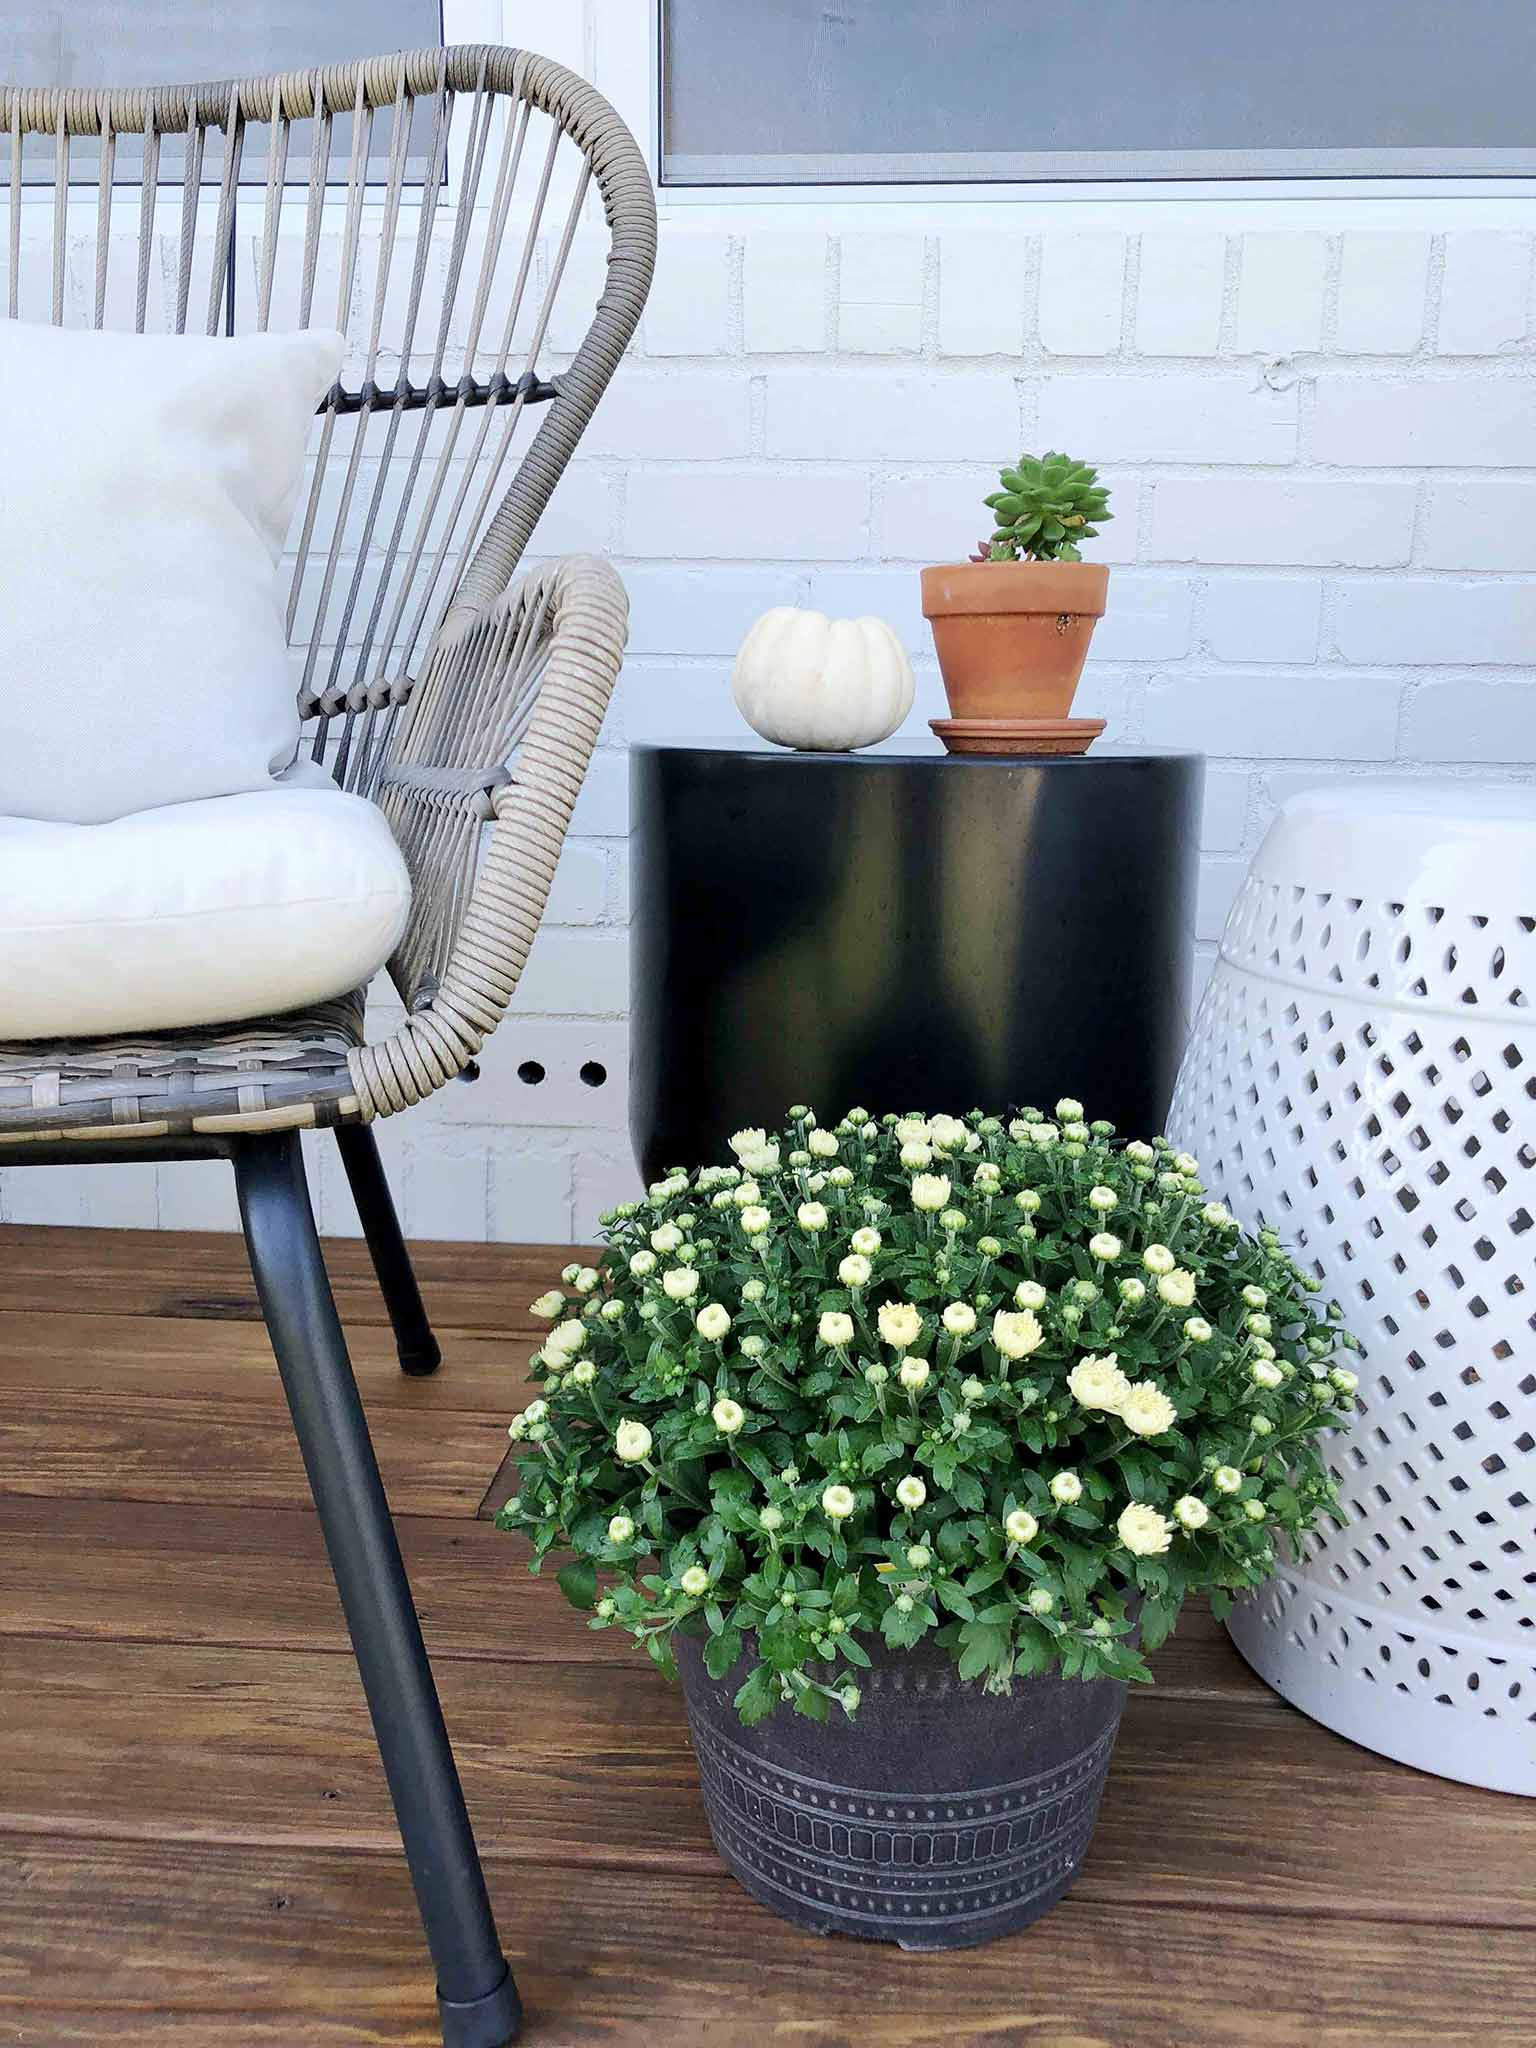 White mums - Front porch fall makeover reveal - That Homebird Life Blog